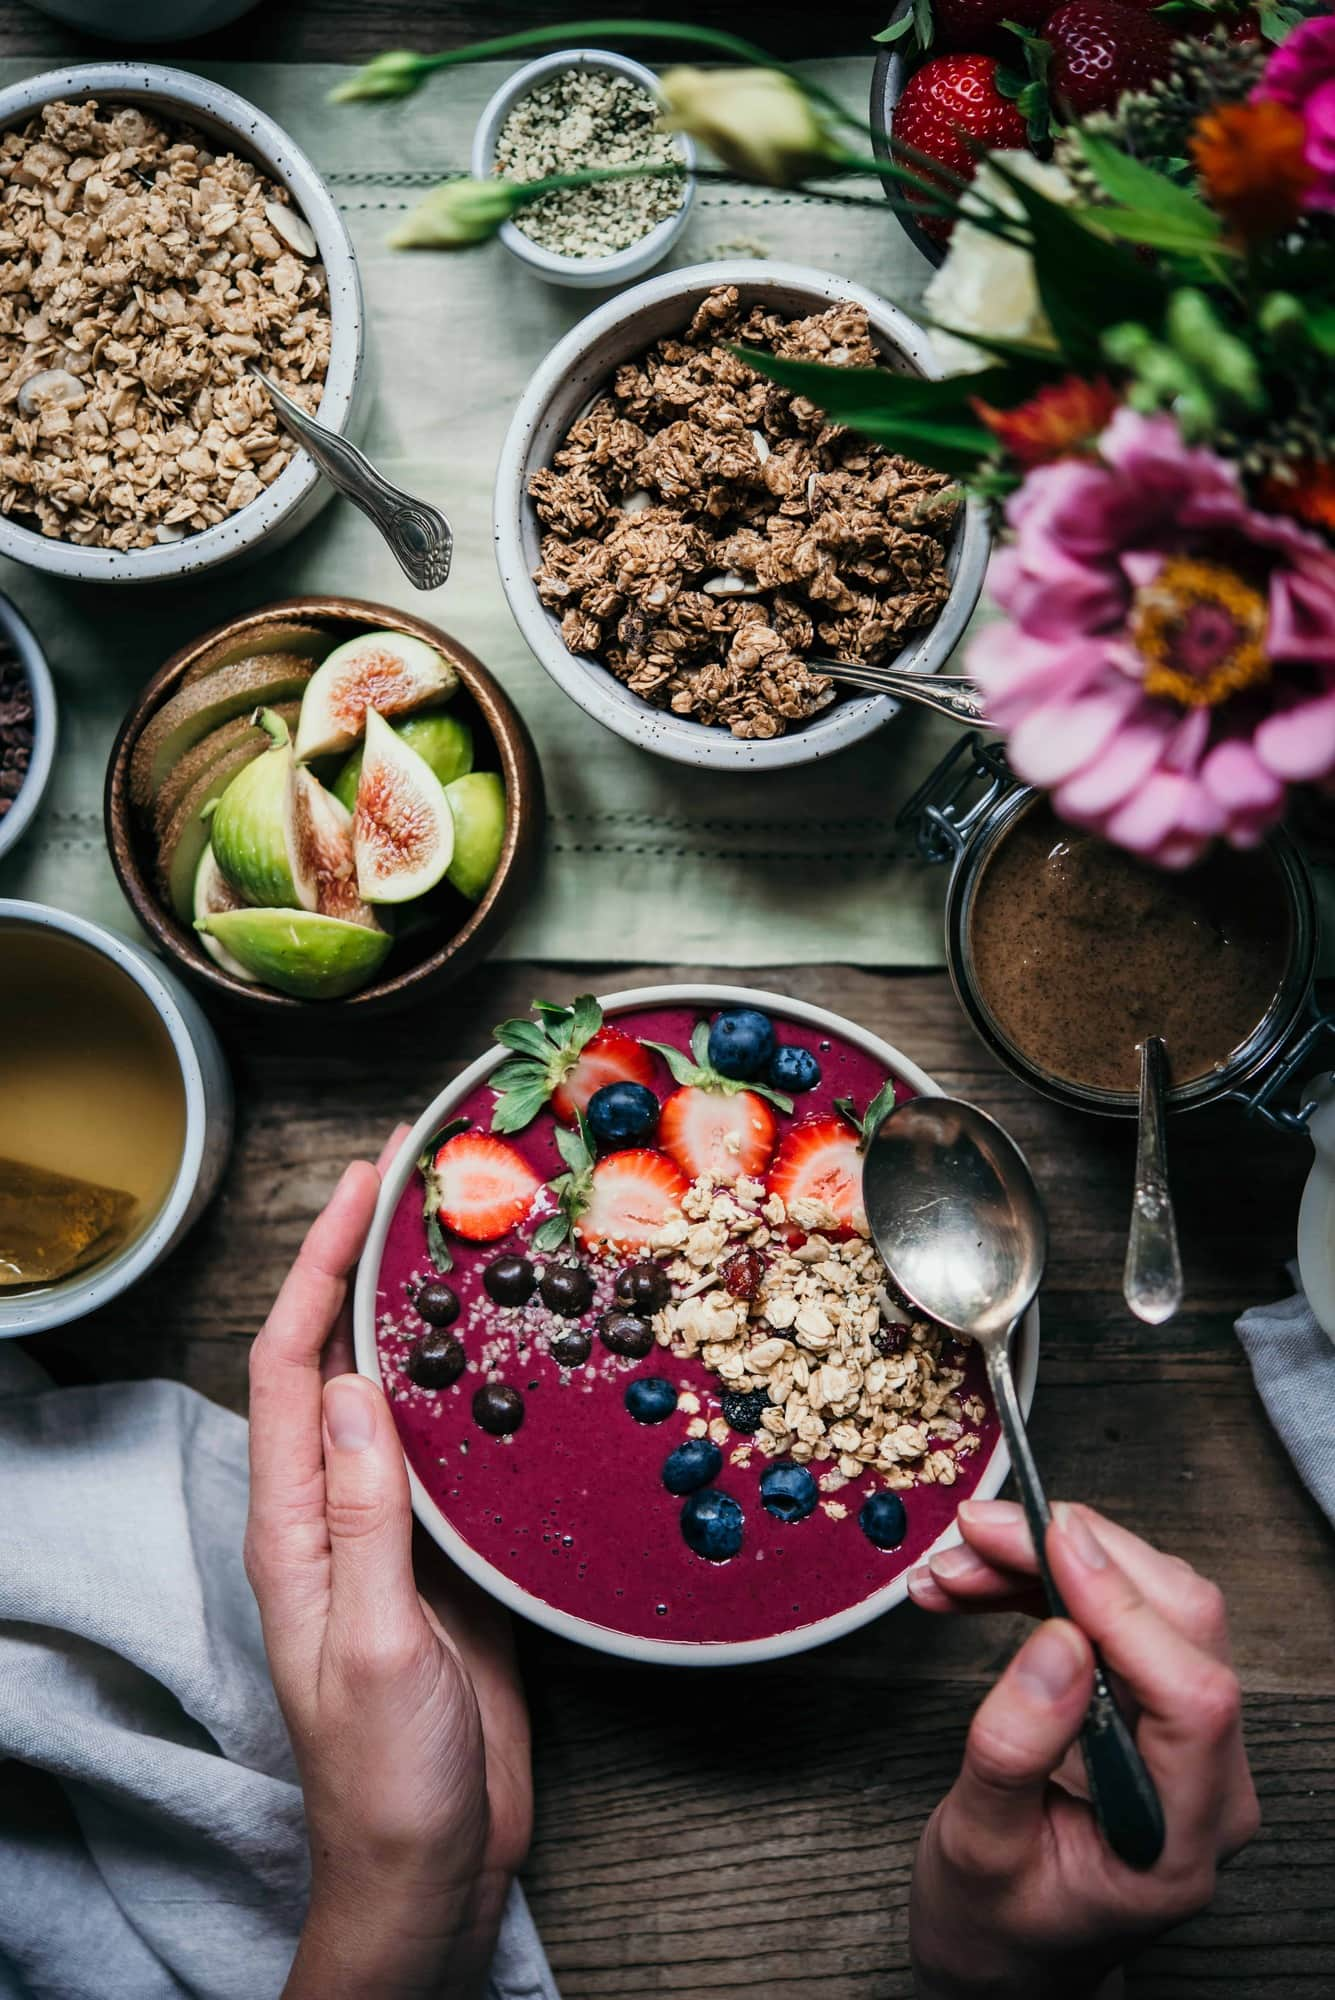 Pink Smoothie Bowl topped with fresh fruit and granola on a table with fresh flowers, bowls of fruit and granola